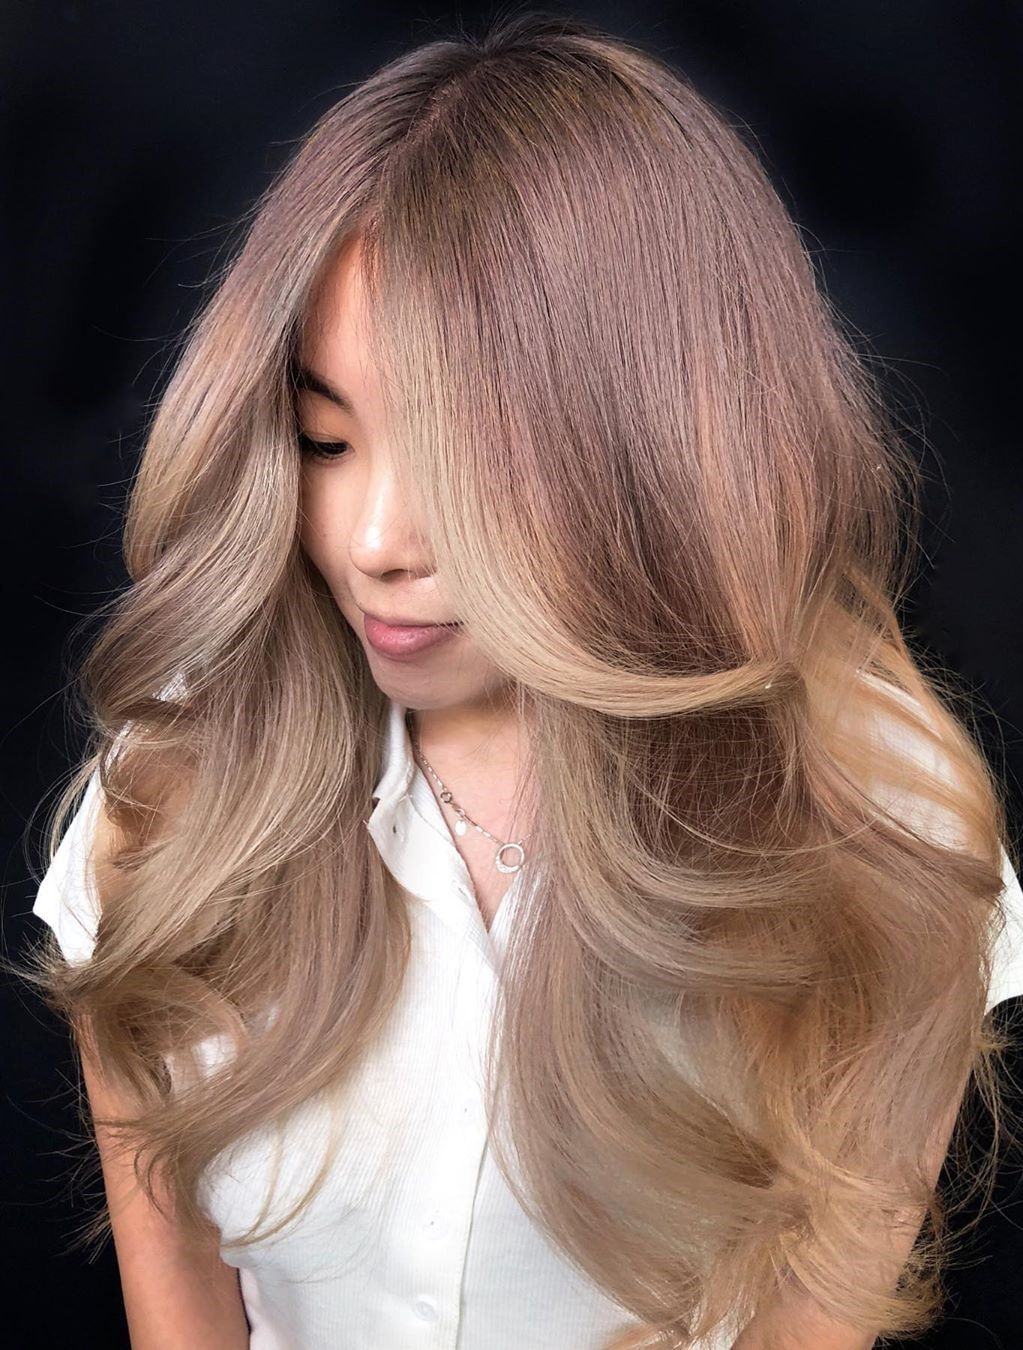 Champagne Blonde Hair Color in 2020 2021 in 2020